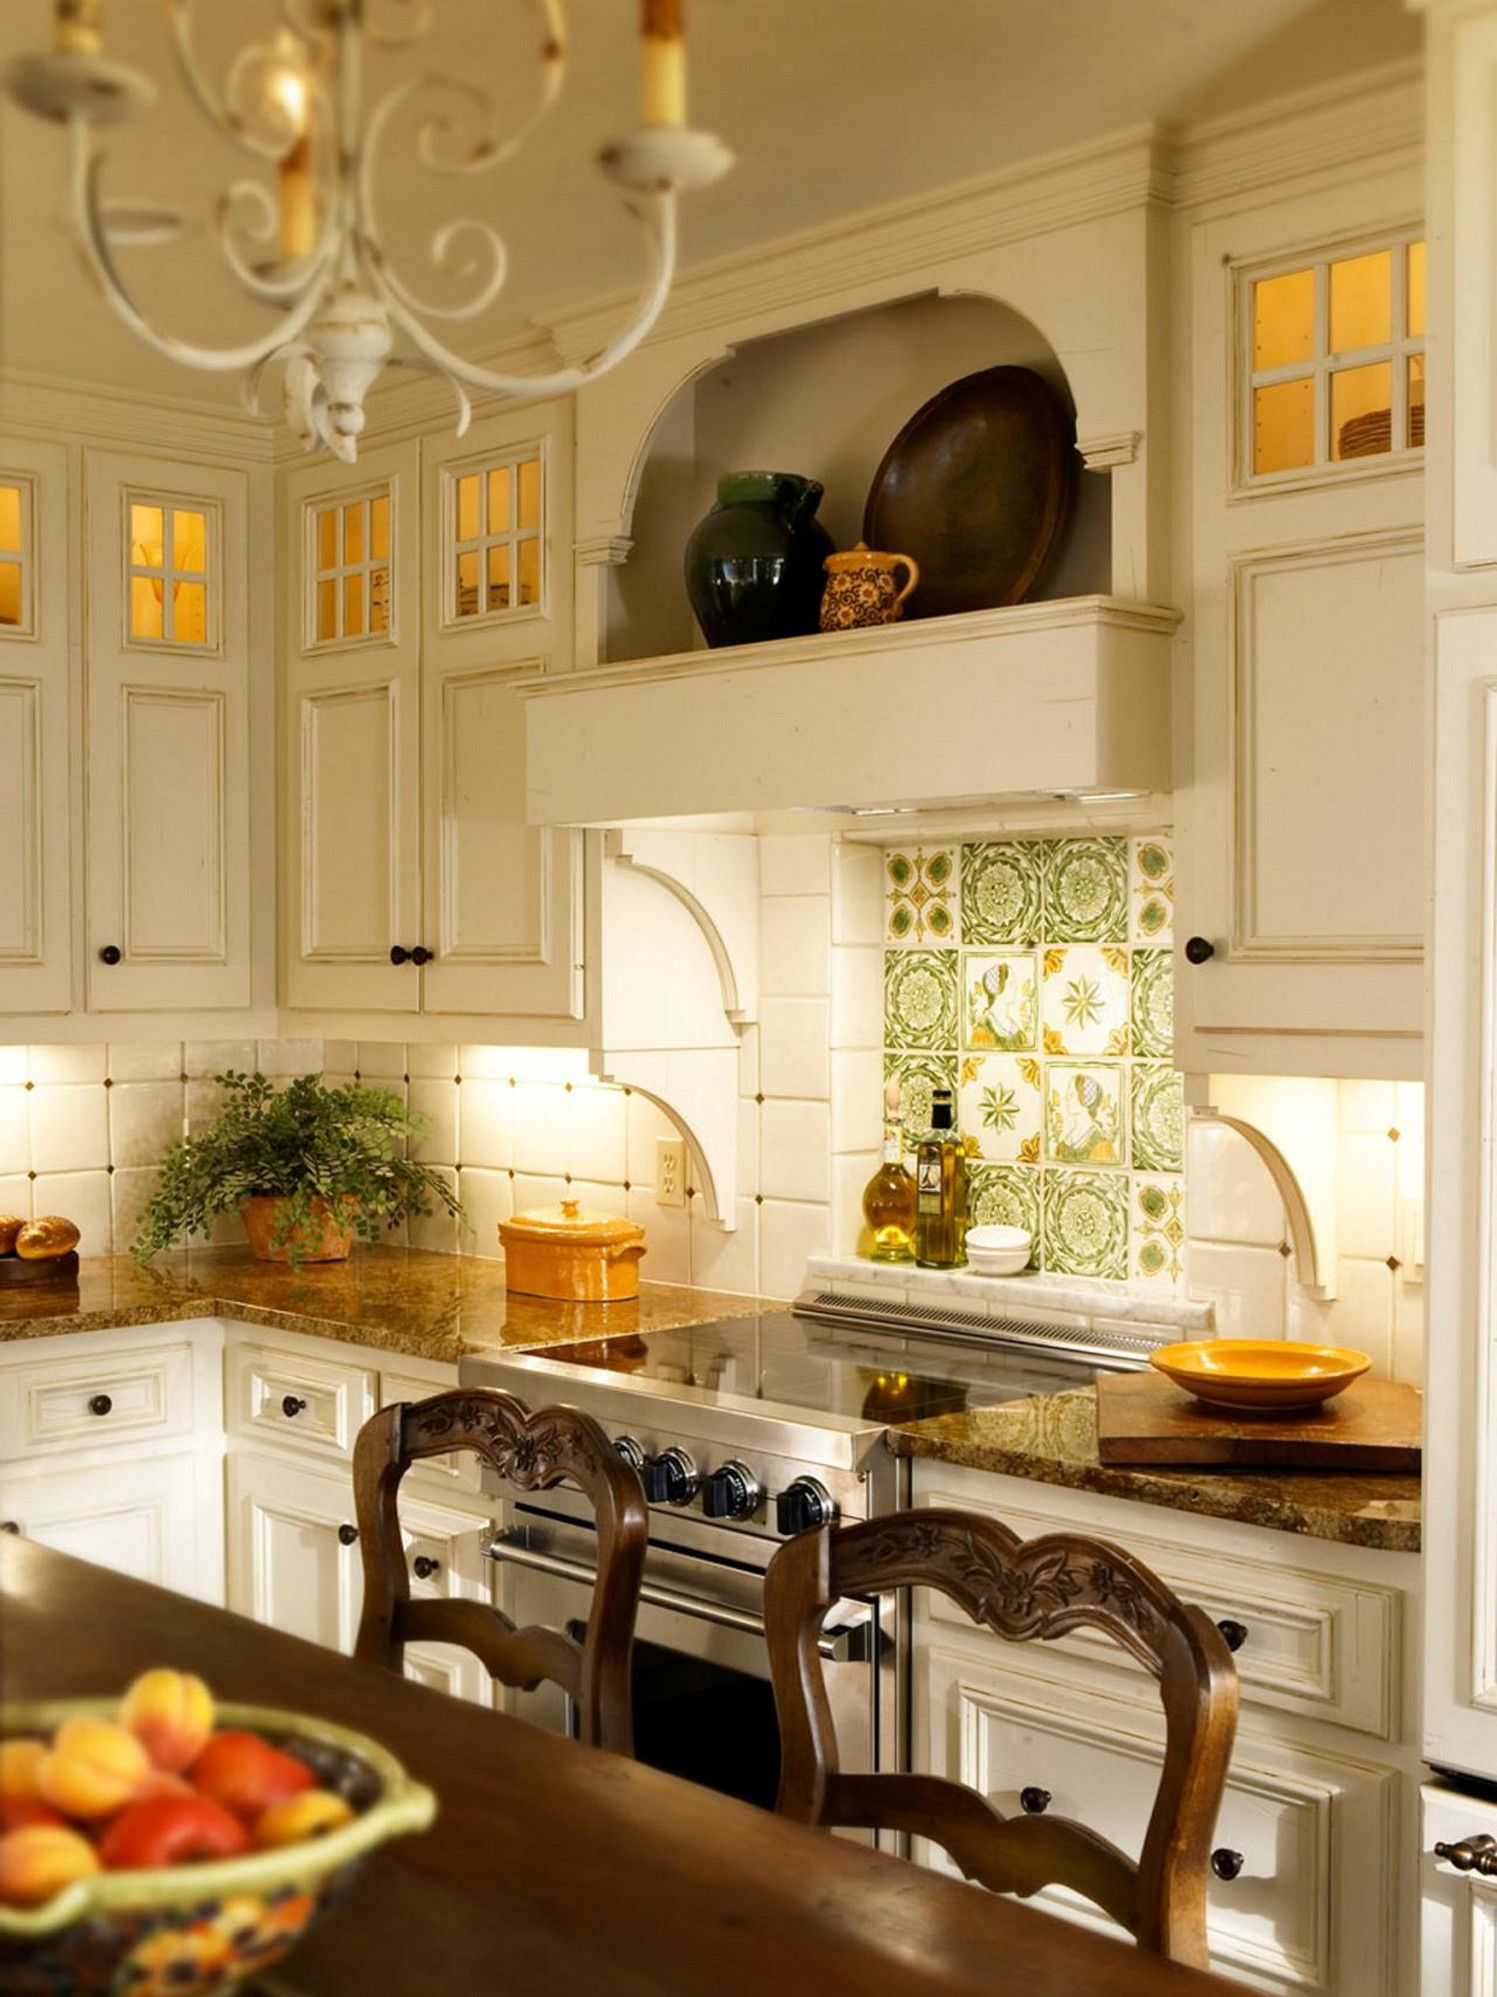 45 Best French Country Kitchens Design Ideas Remodel On A Budget